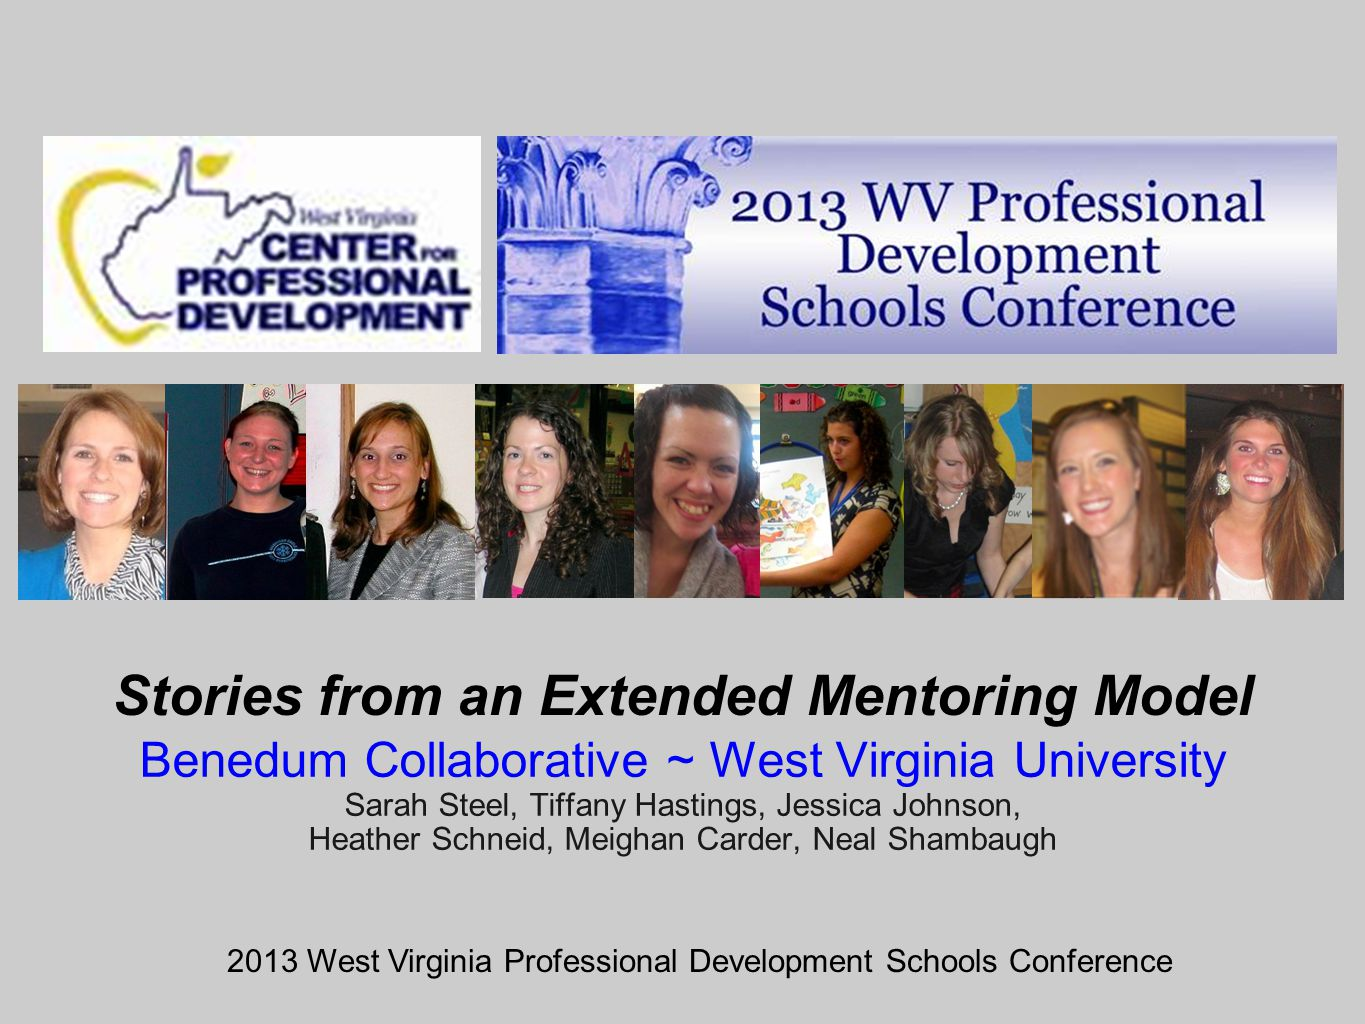 Stories from an Extended Mentoring Model